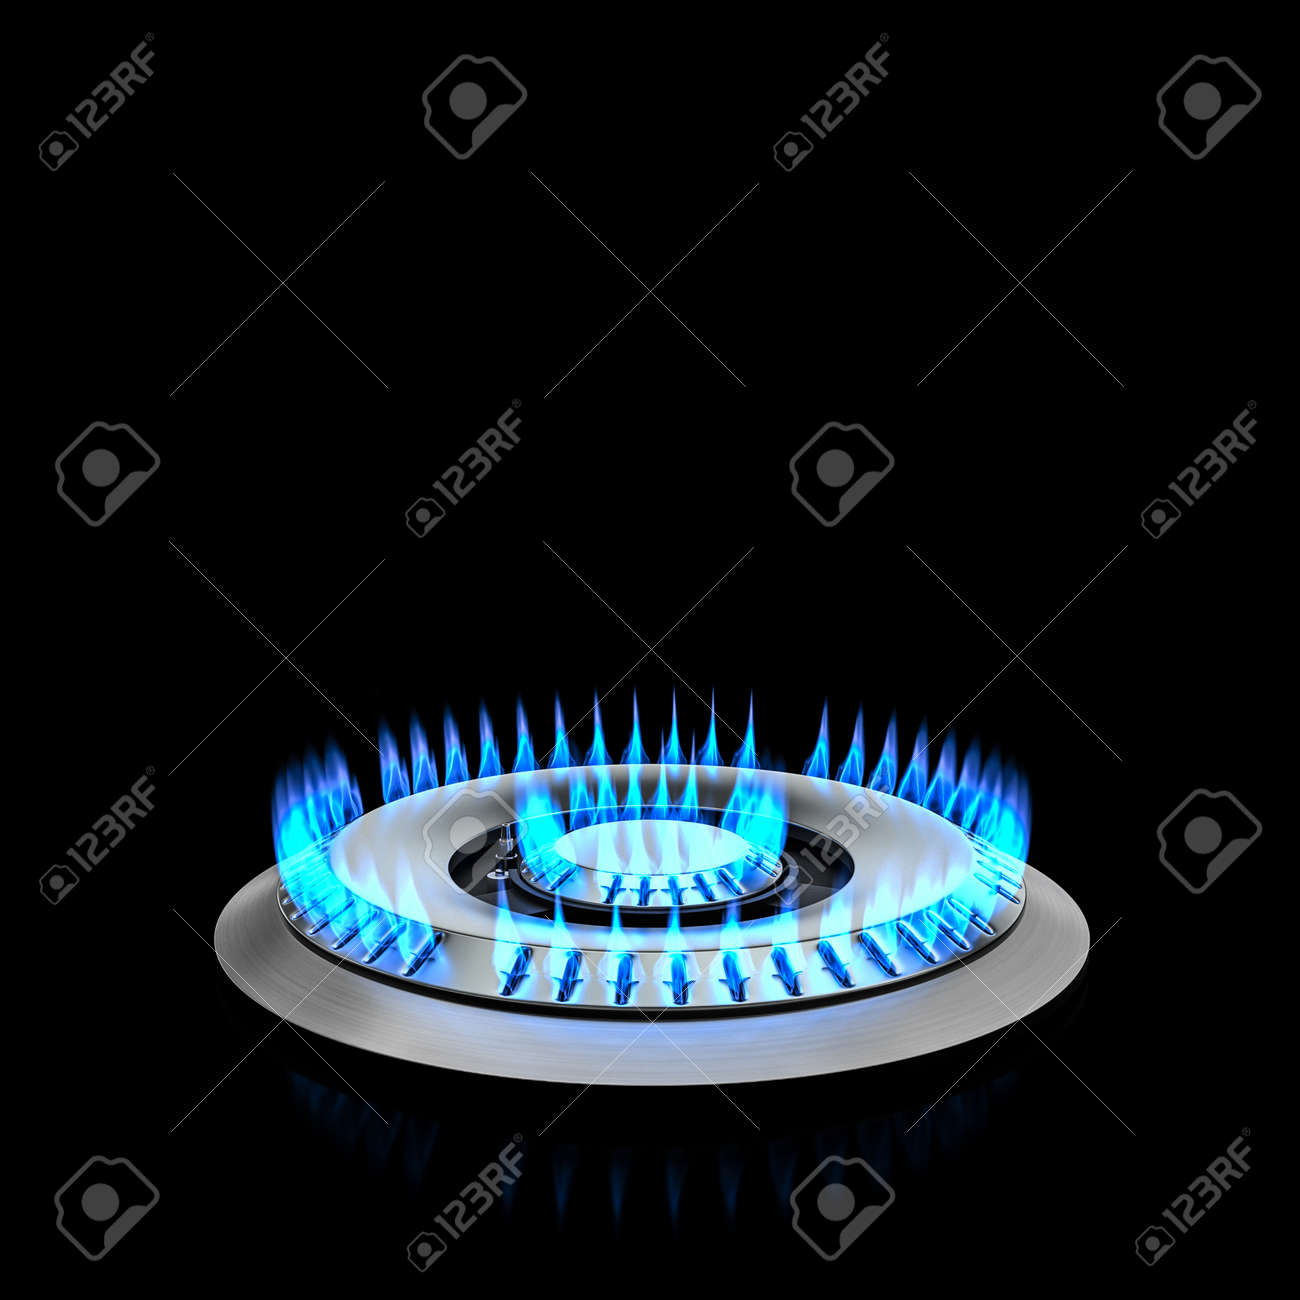 kitchen double cooker gas blue flame. 3d render - 173236143